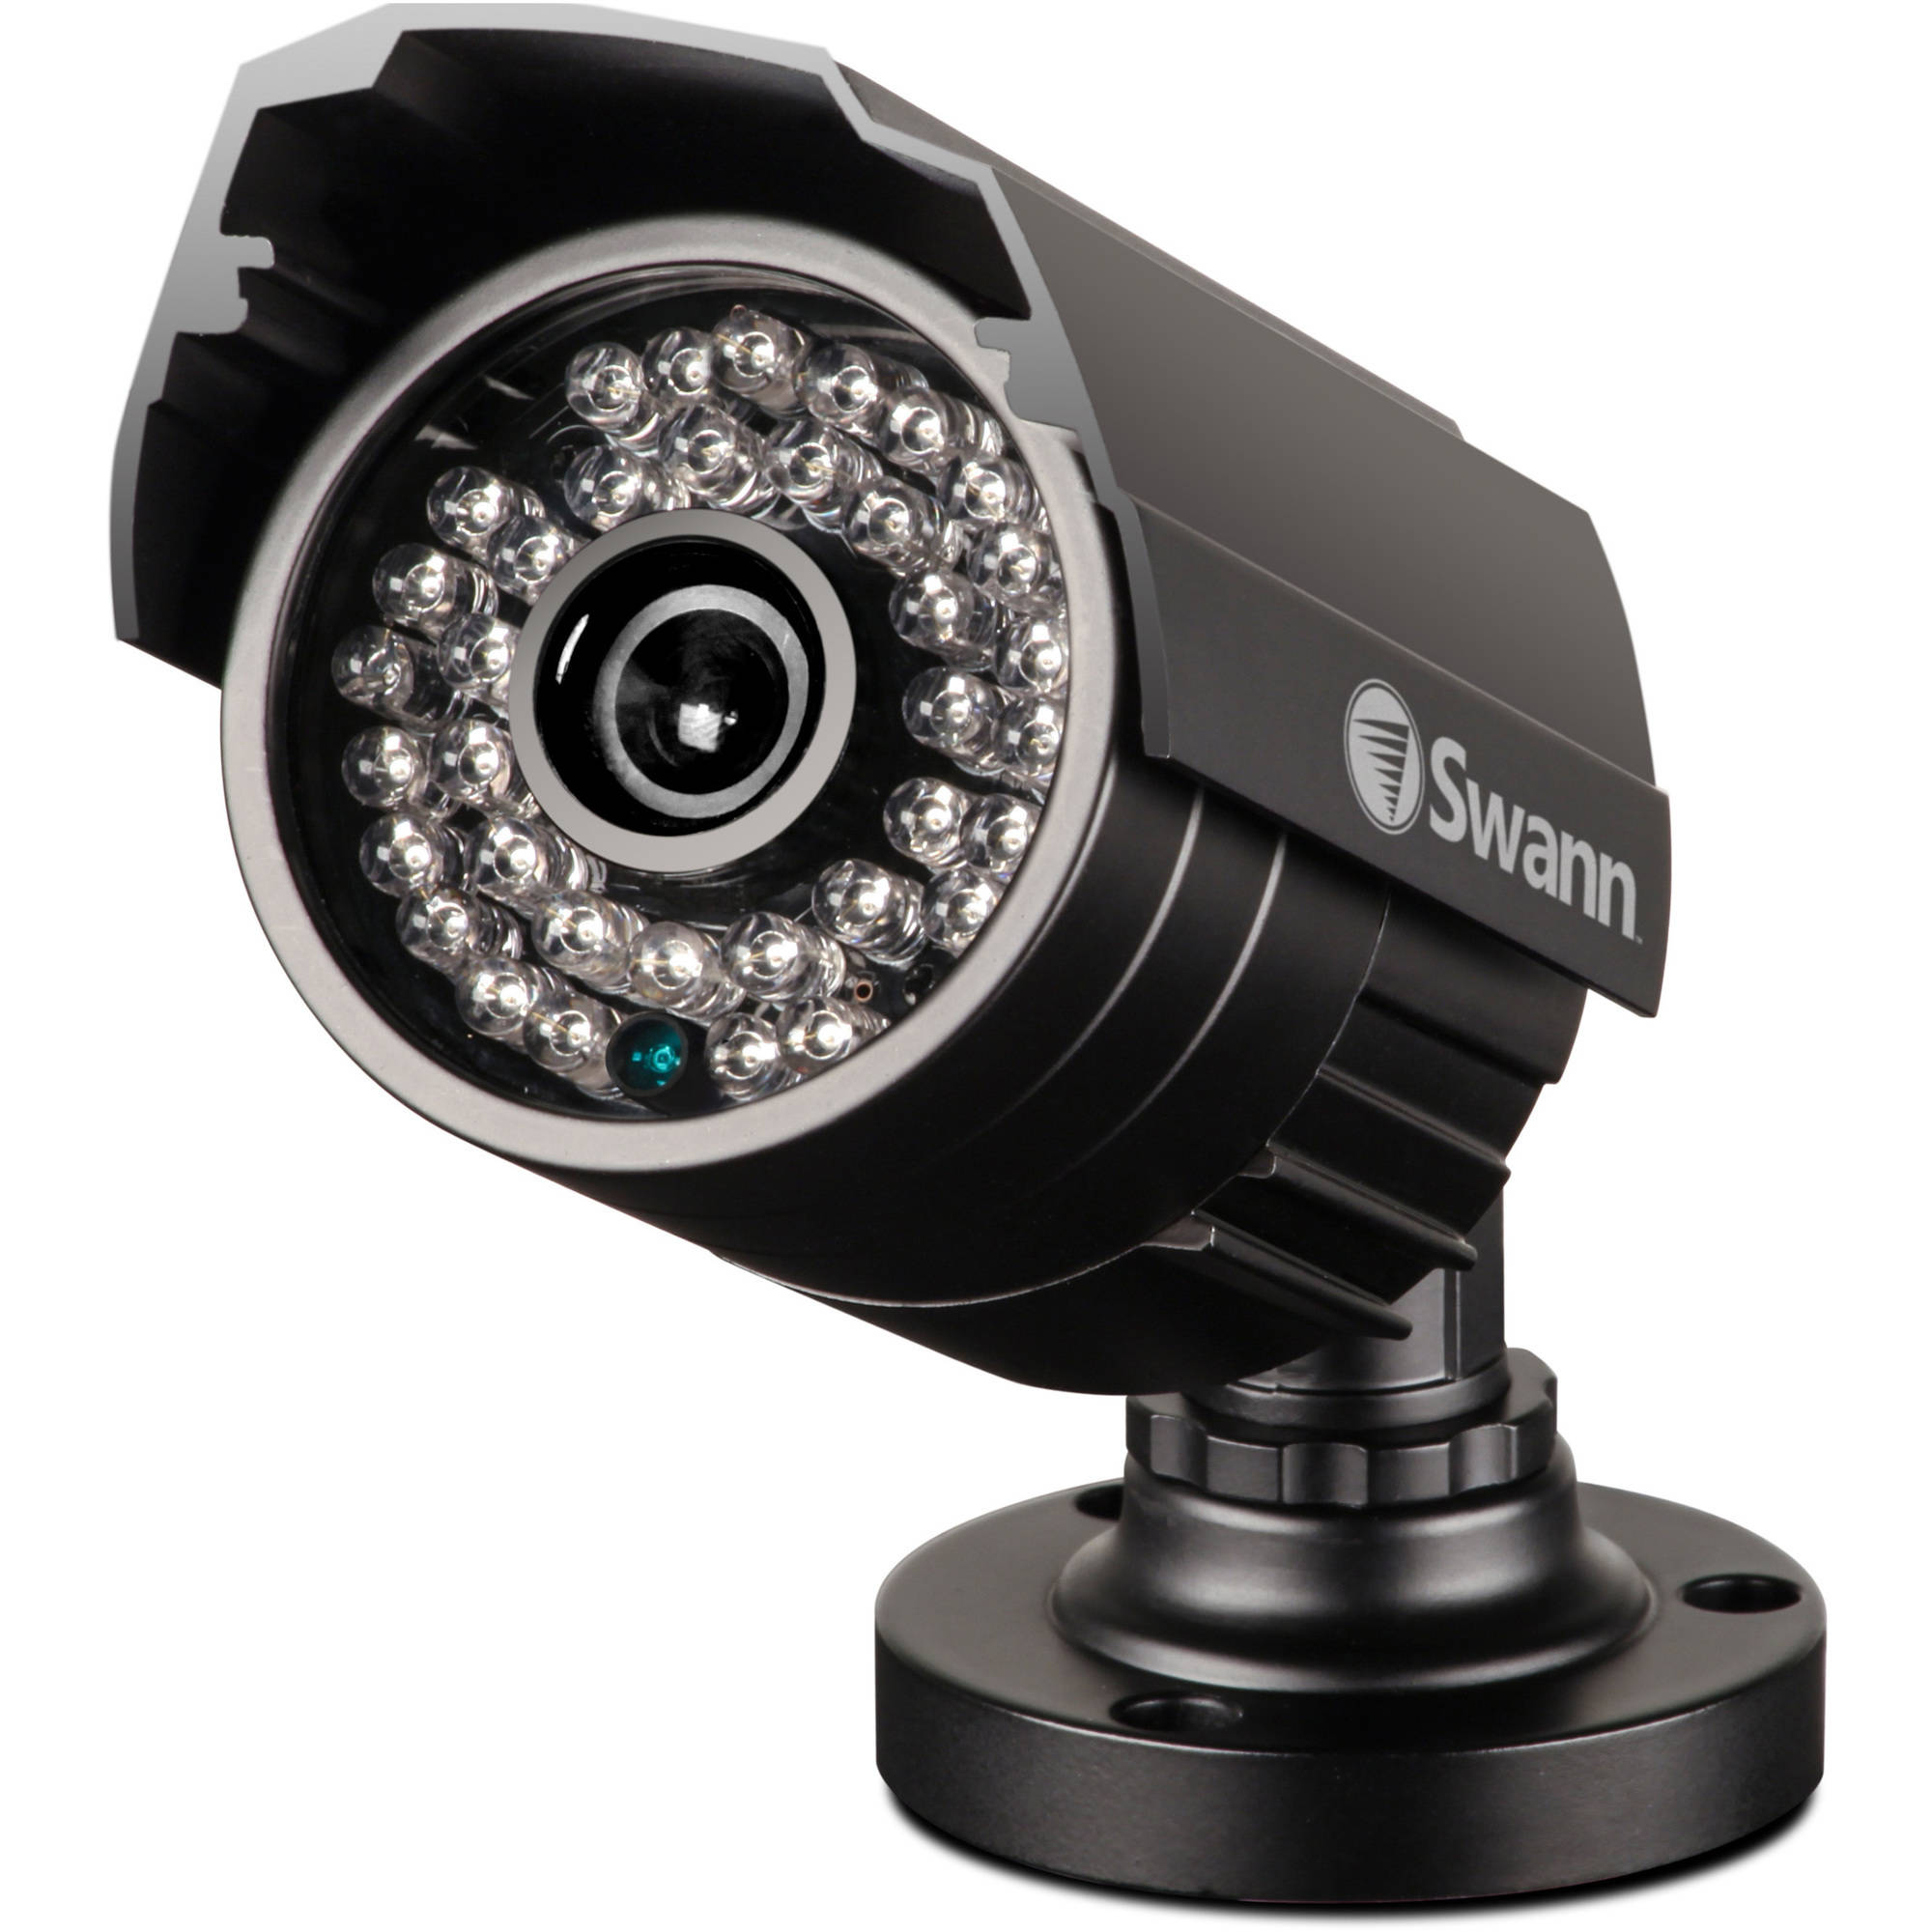 Swann PRO-735 - Imitation Dummy Camera